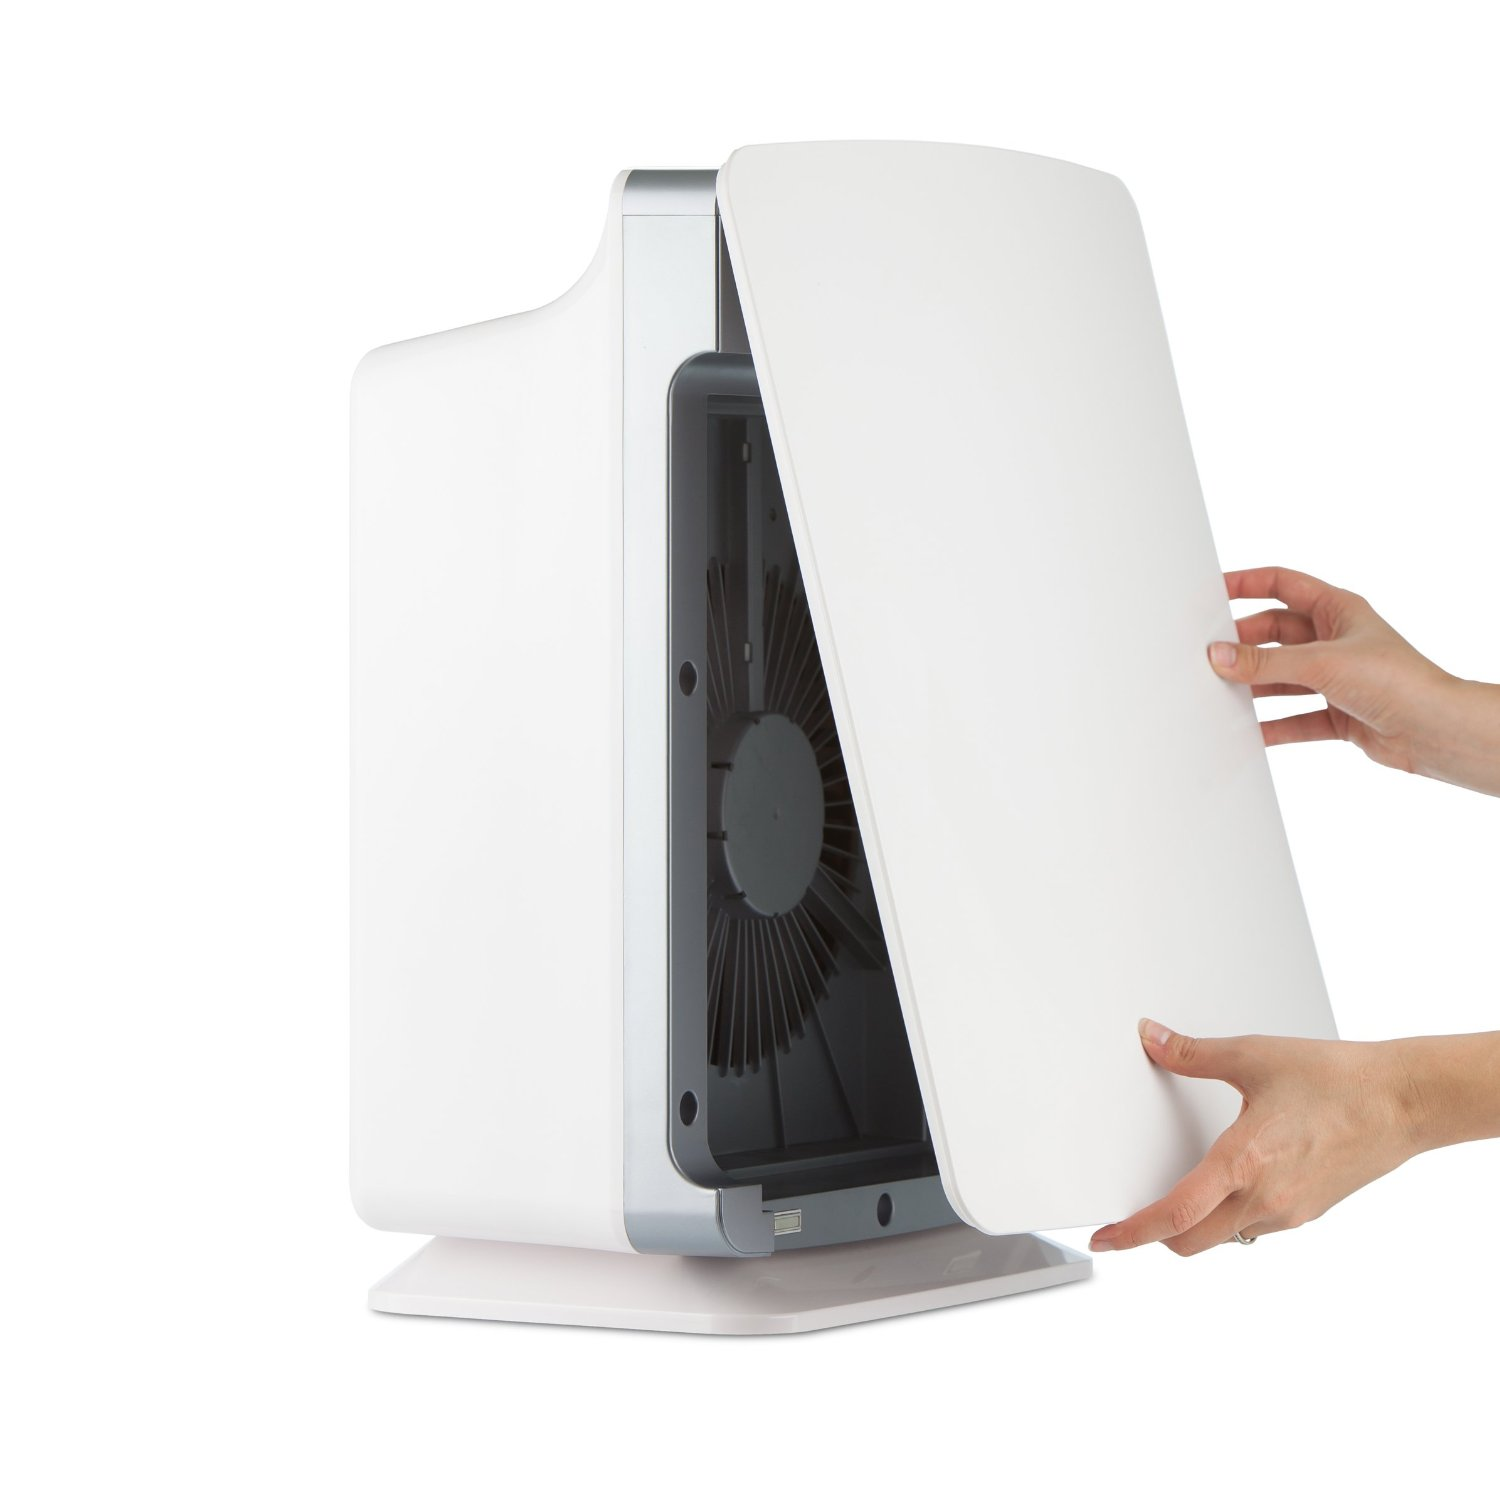 alen-breathesmart-customizable-air-purifier-back